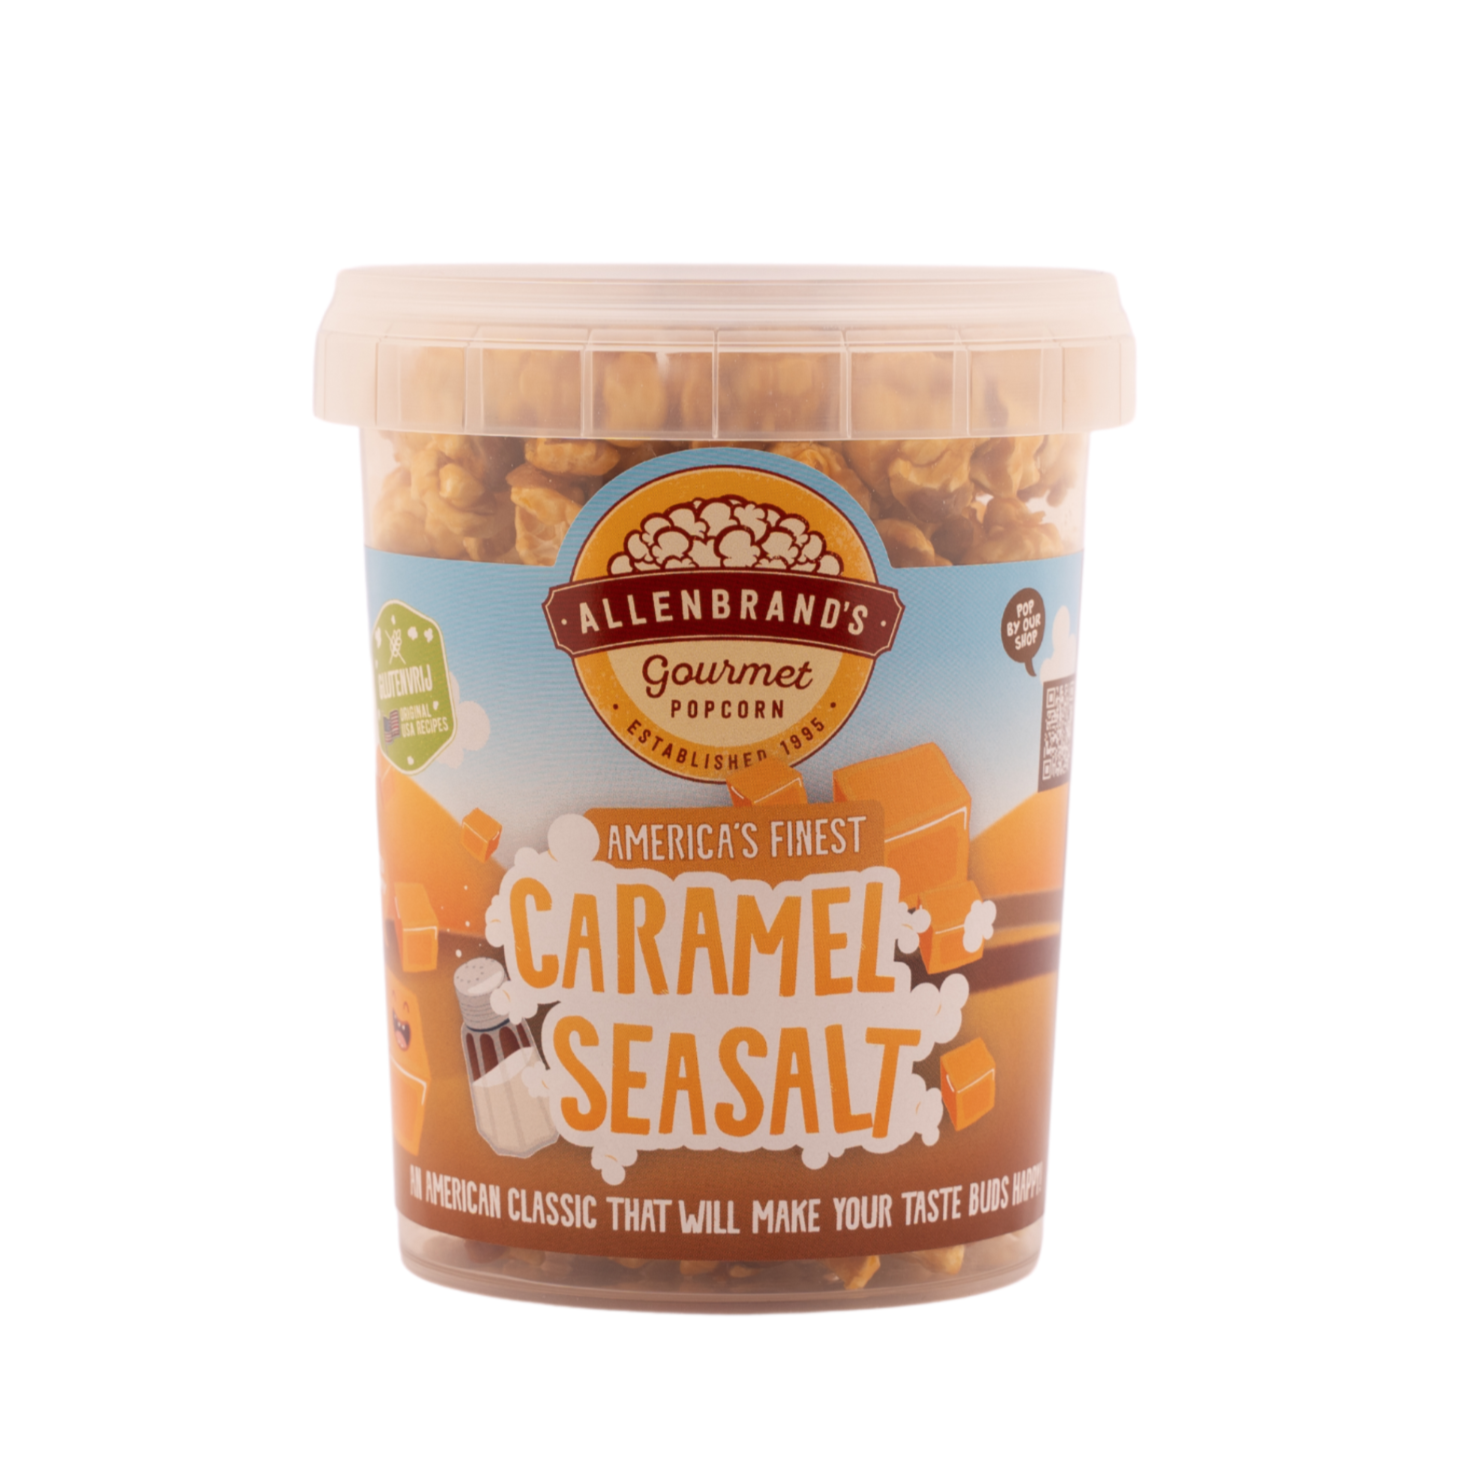 Caramel Sea Salt: An American classic that will make your taste buds happy!